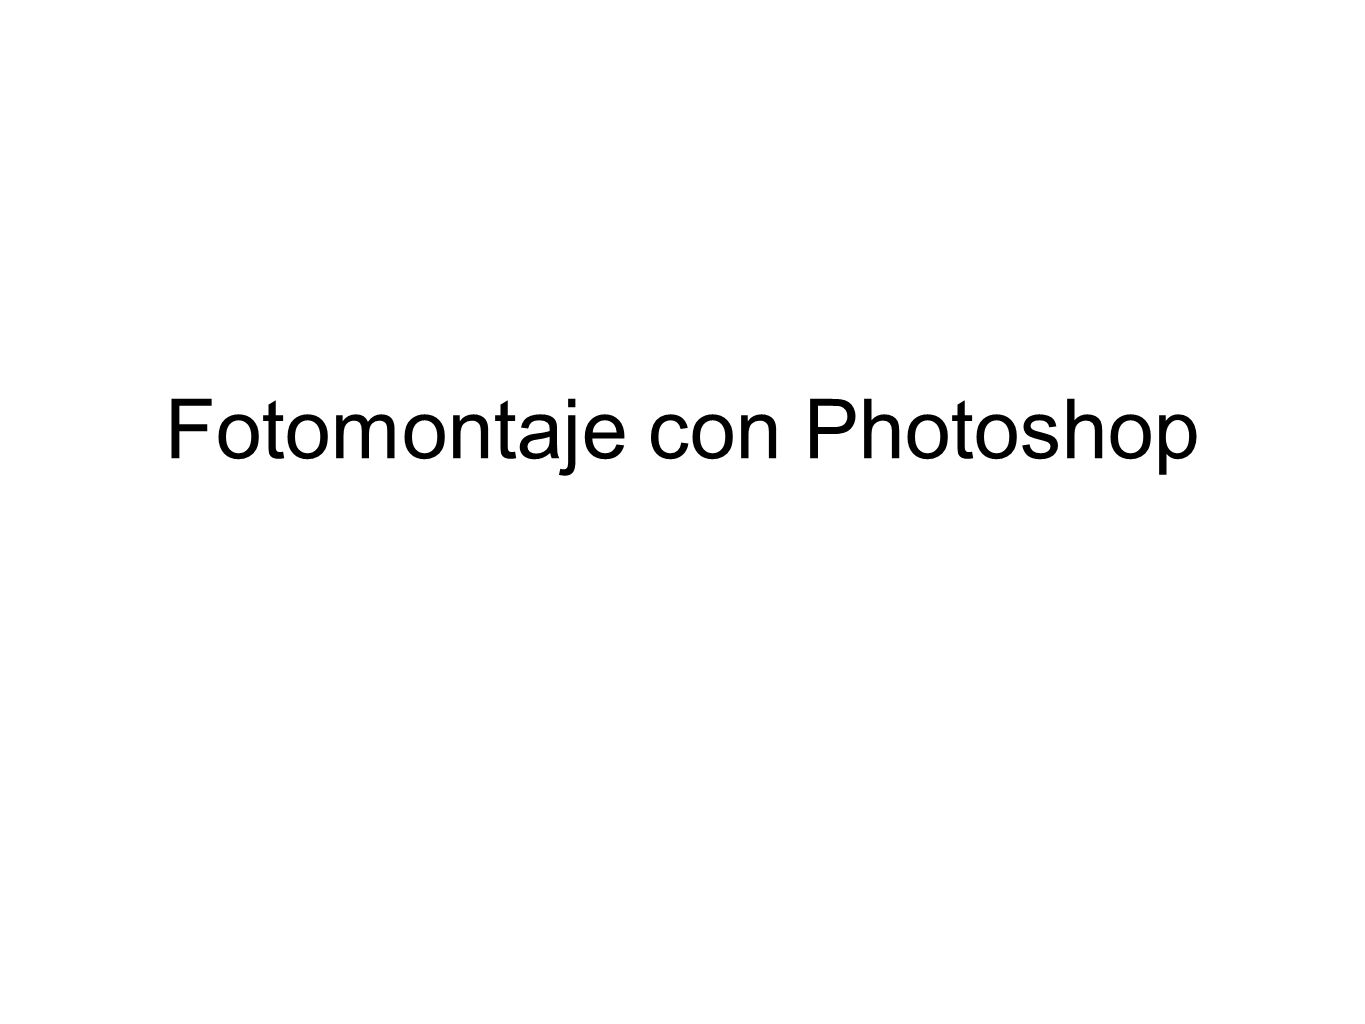 Fotomontaje con Photoshop